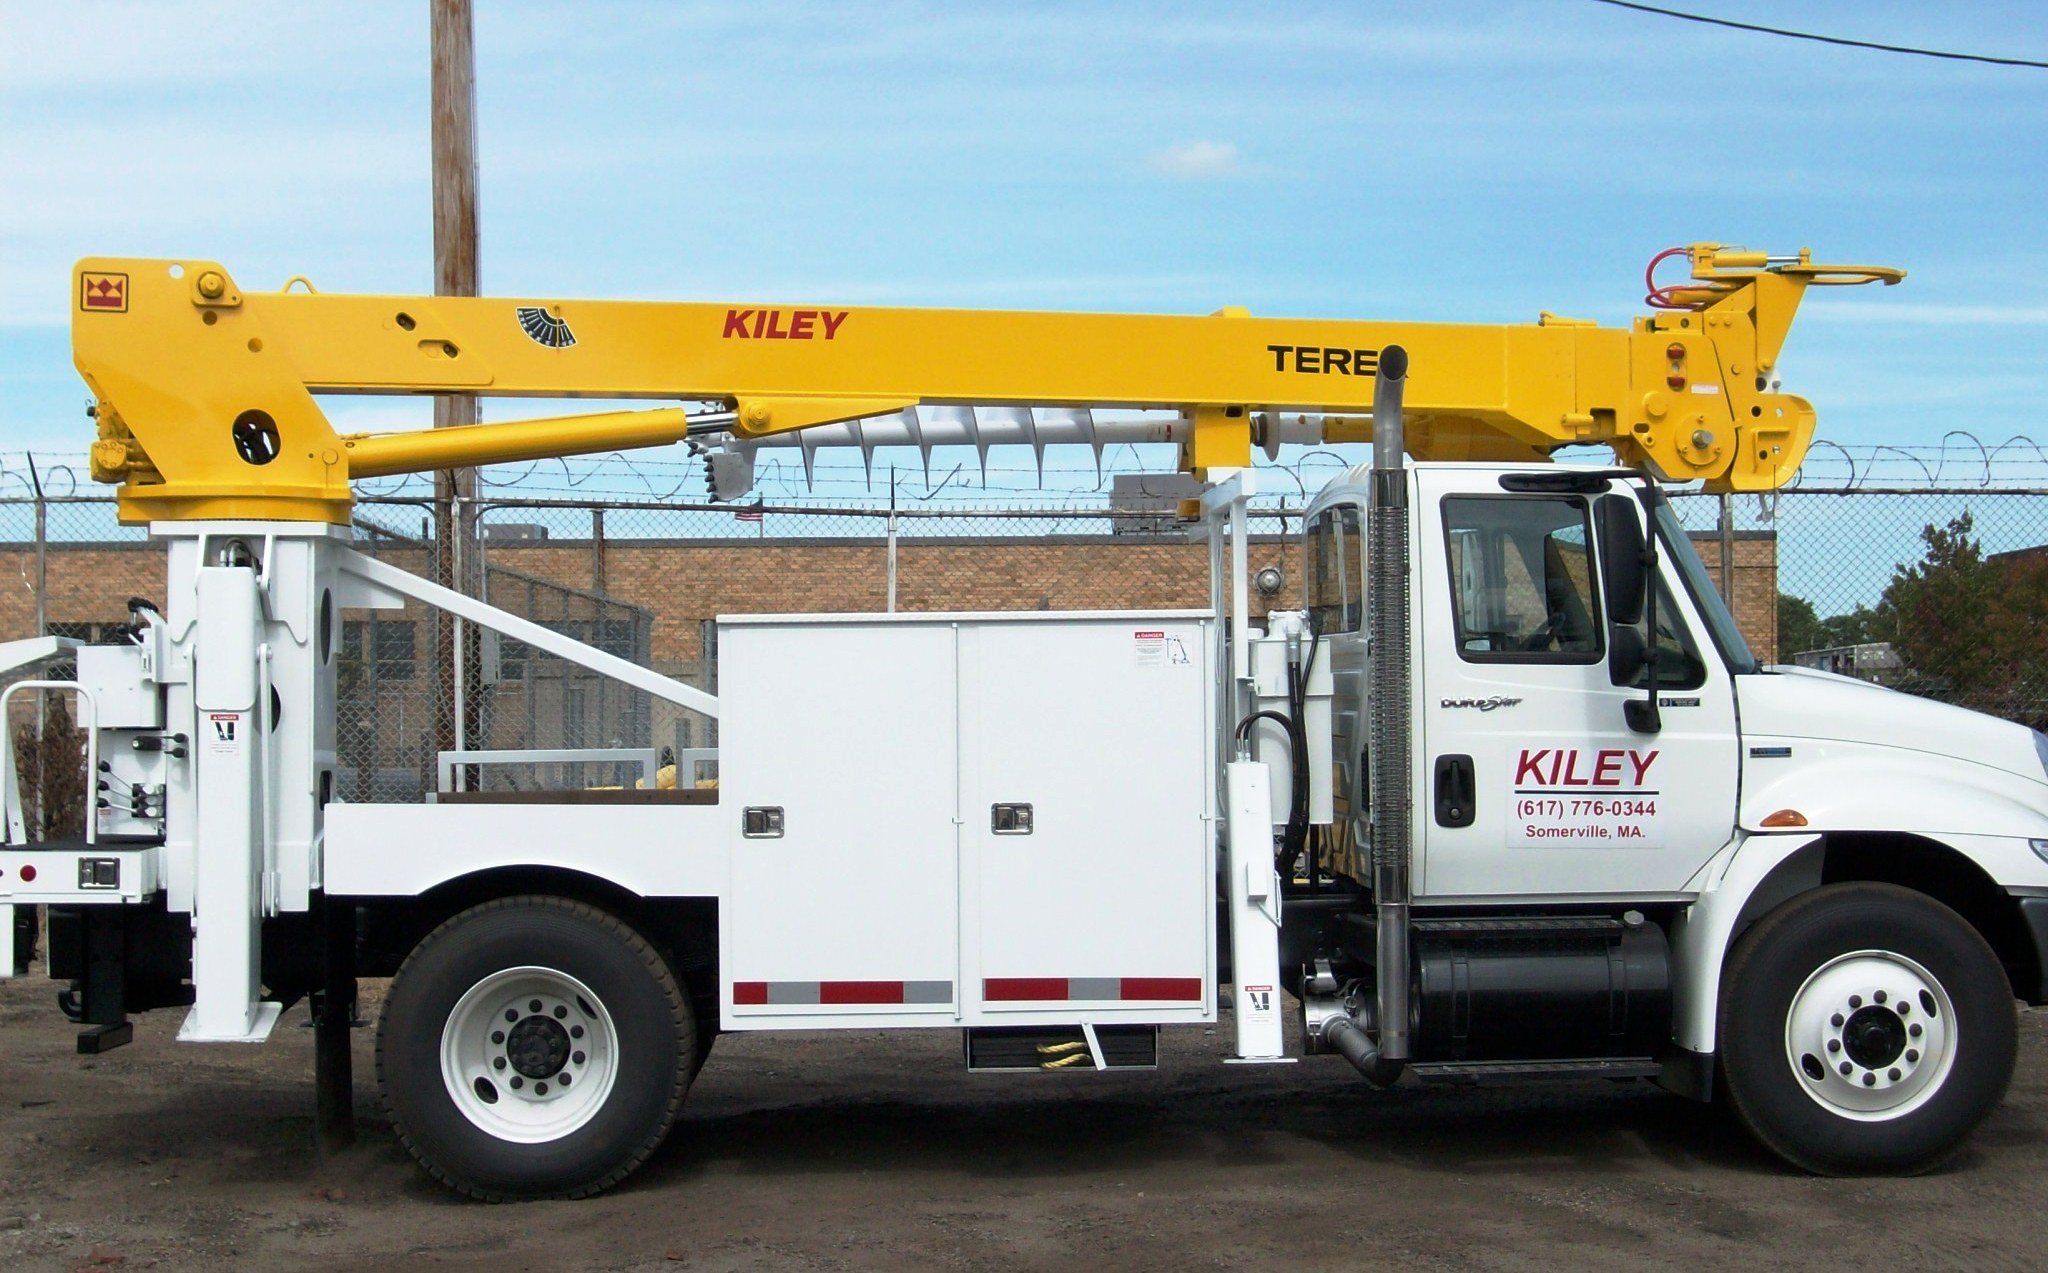 James A Kiley, Co » Utility Aerial Device and Digger Derrick